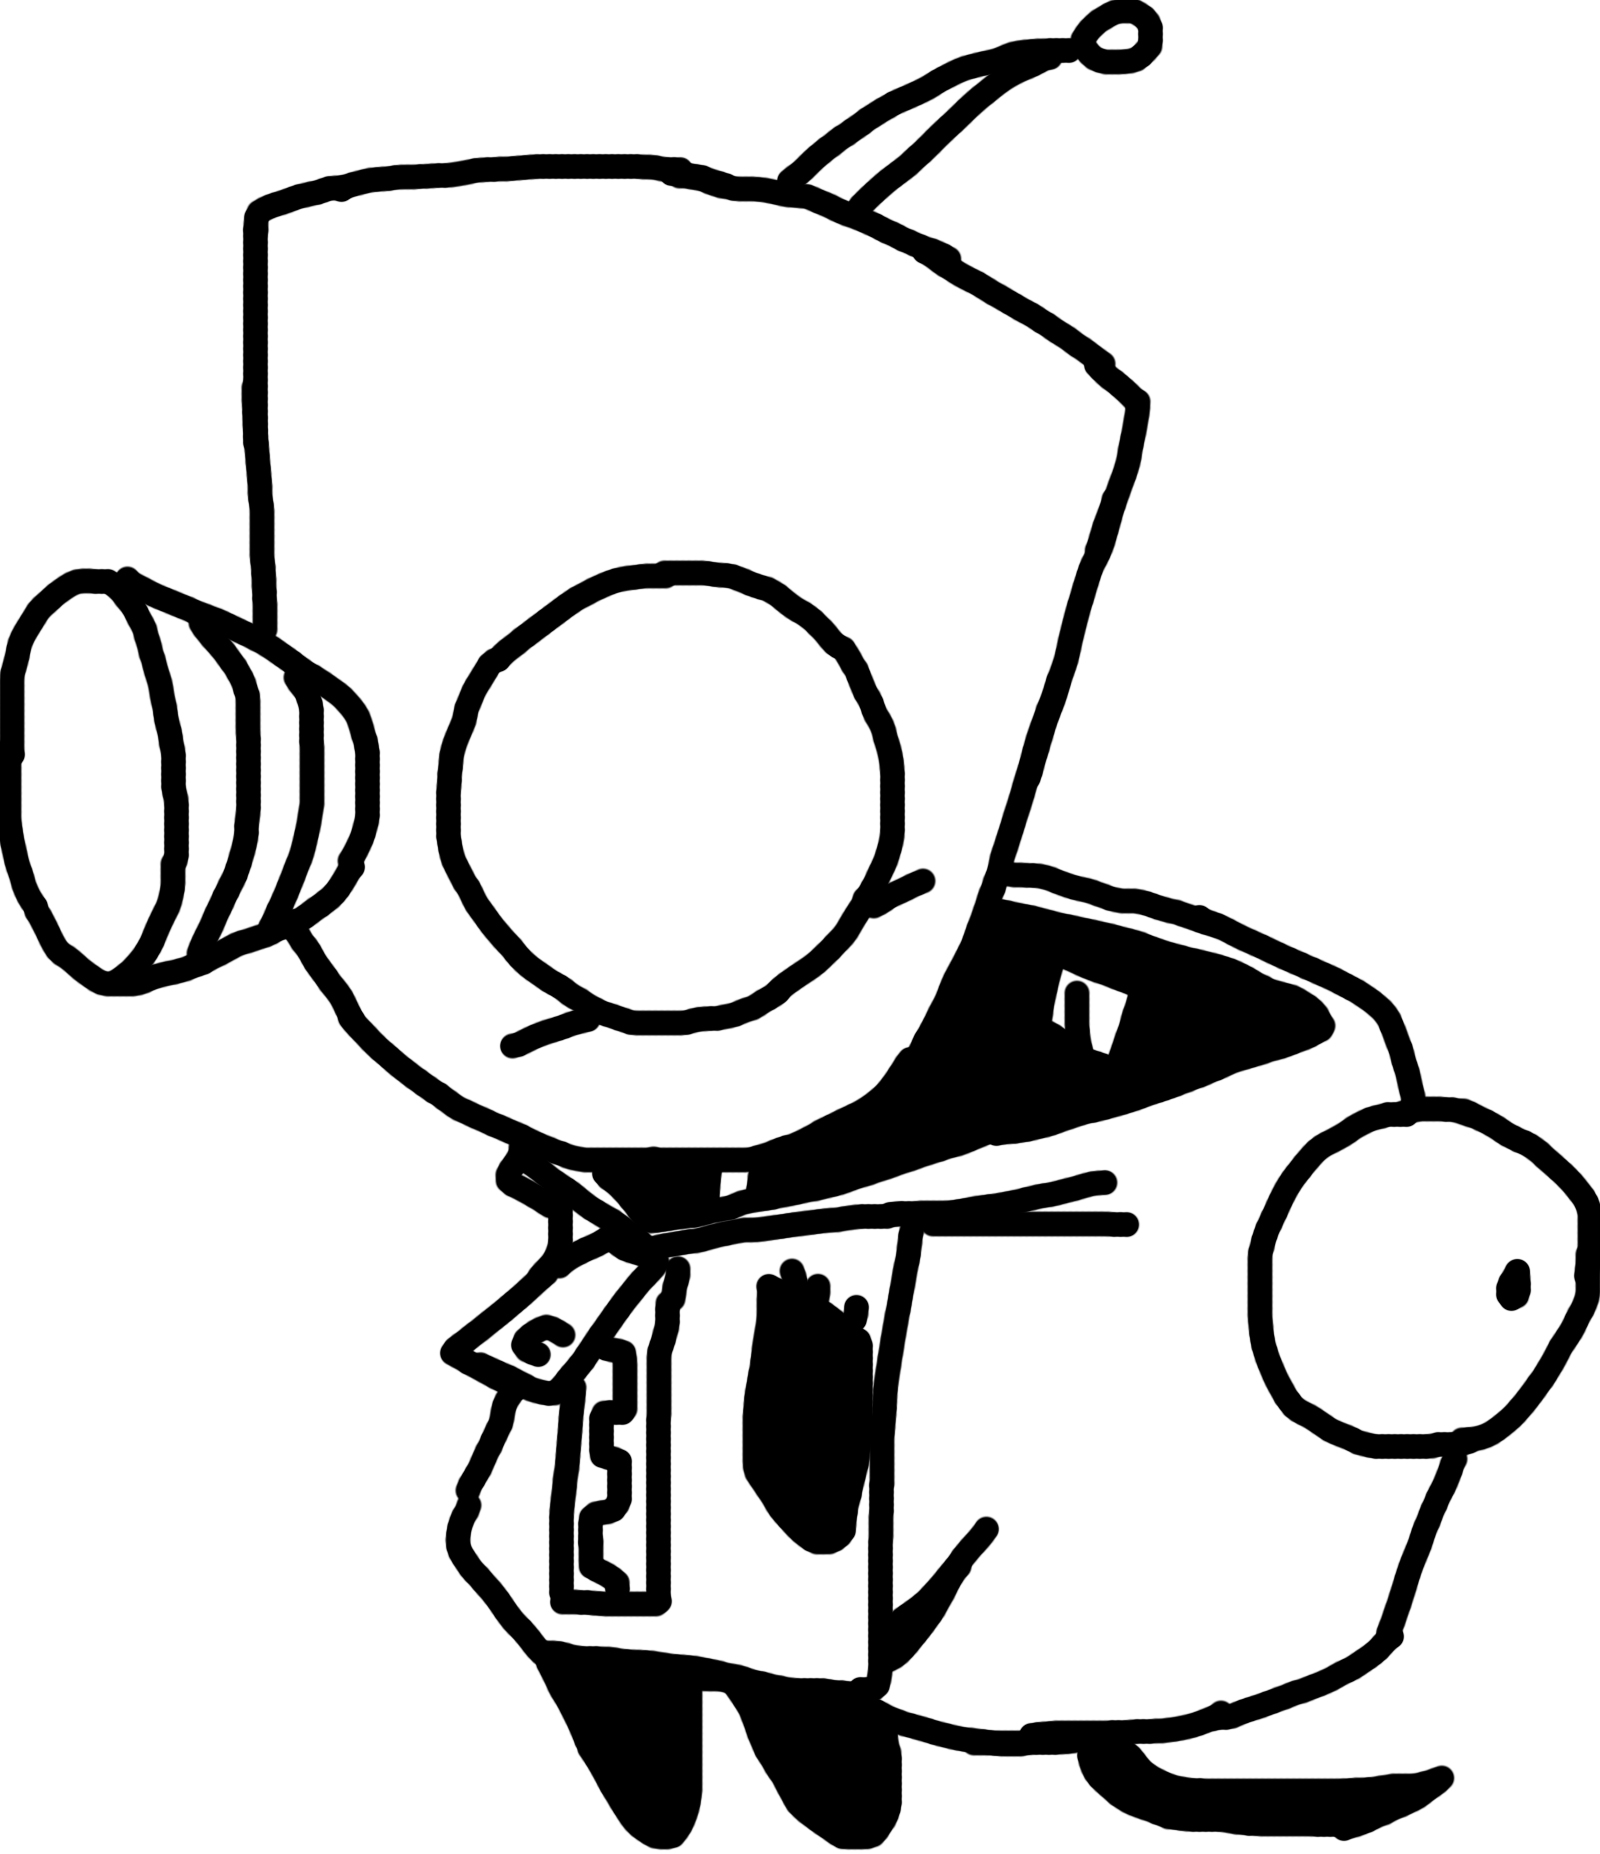 coloring pages of gir - photo#28